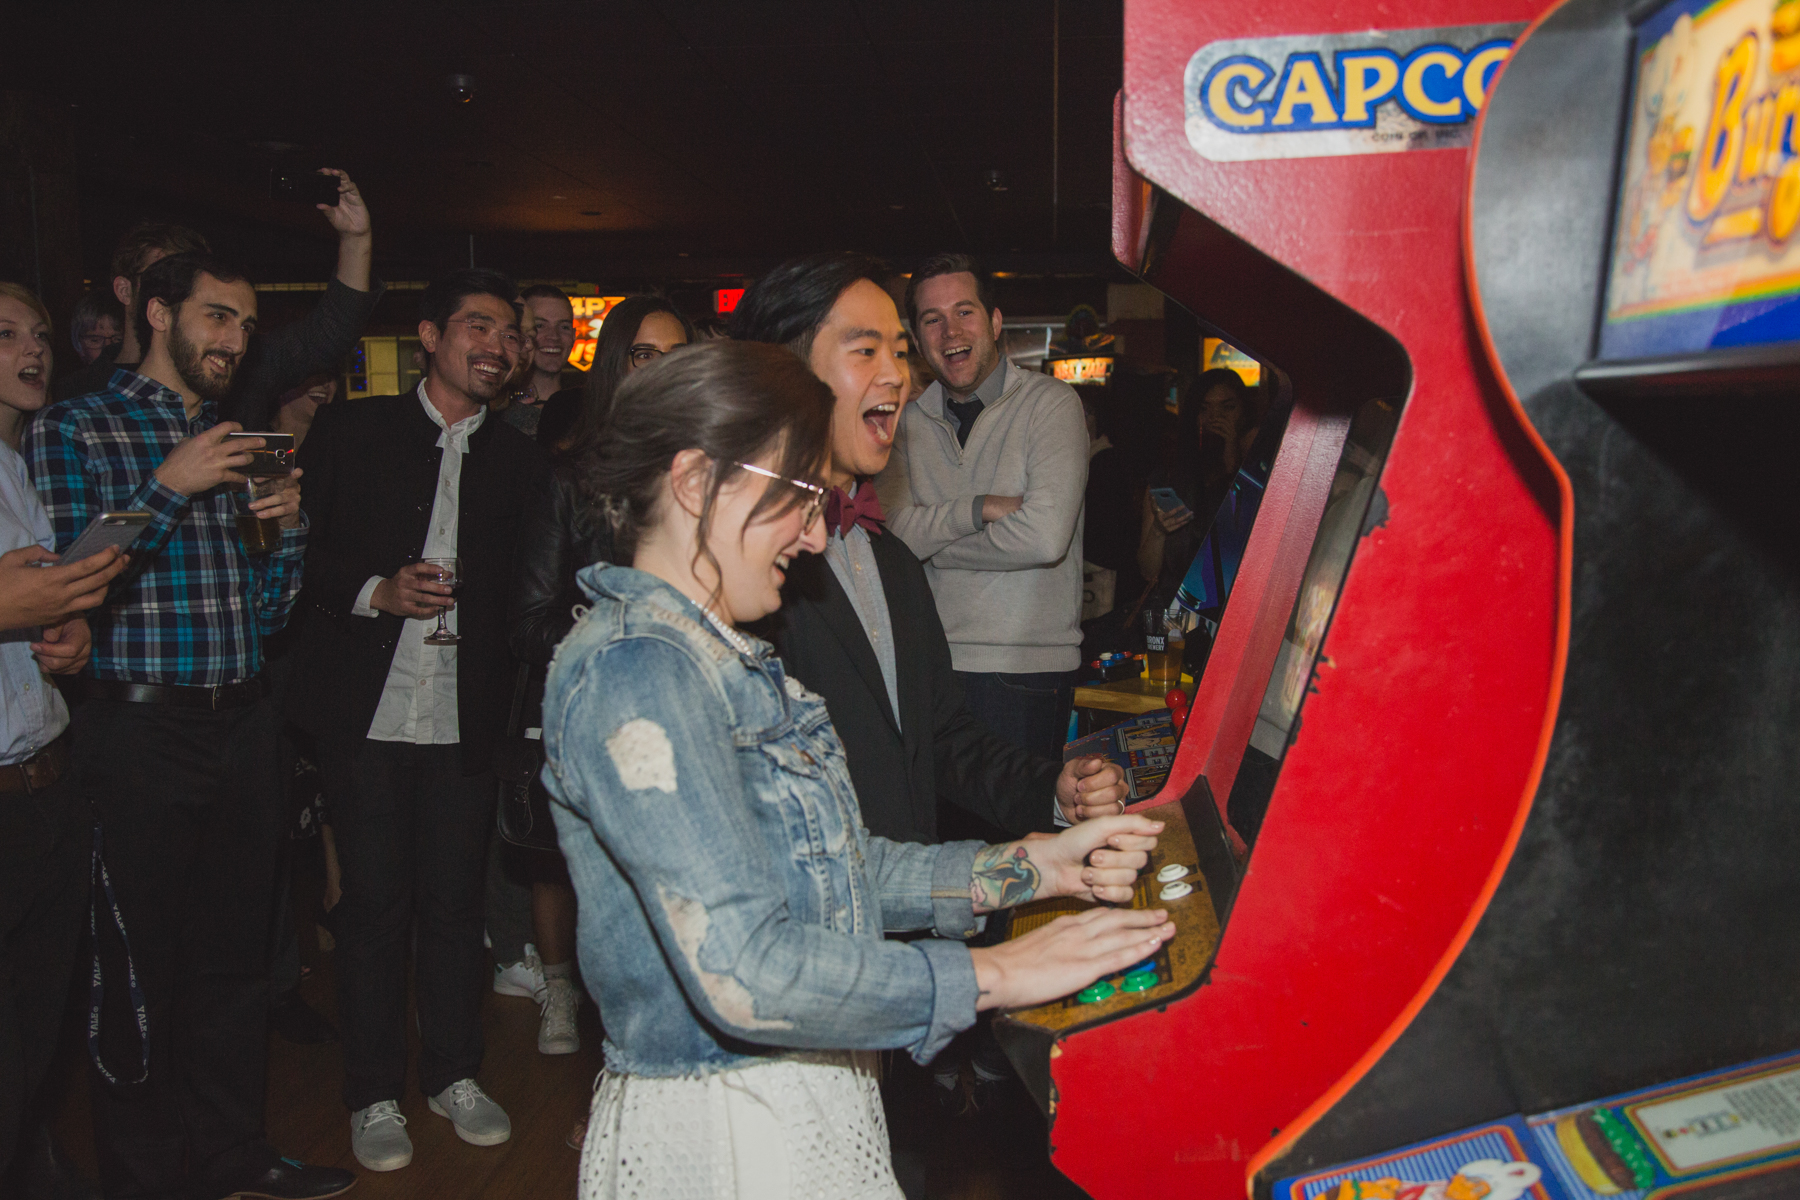 Barcade New Haven Wedding-49.jpg